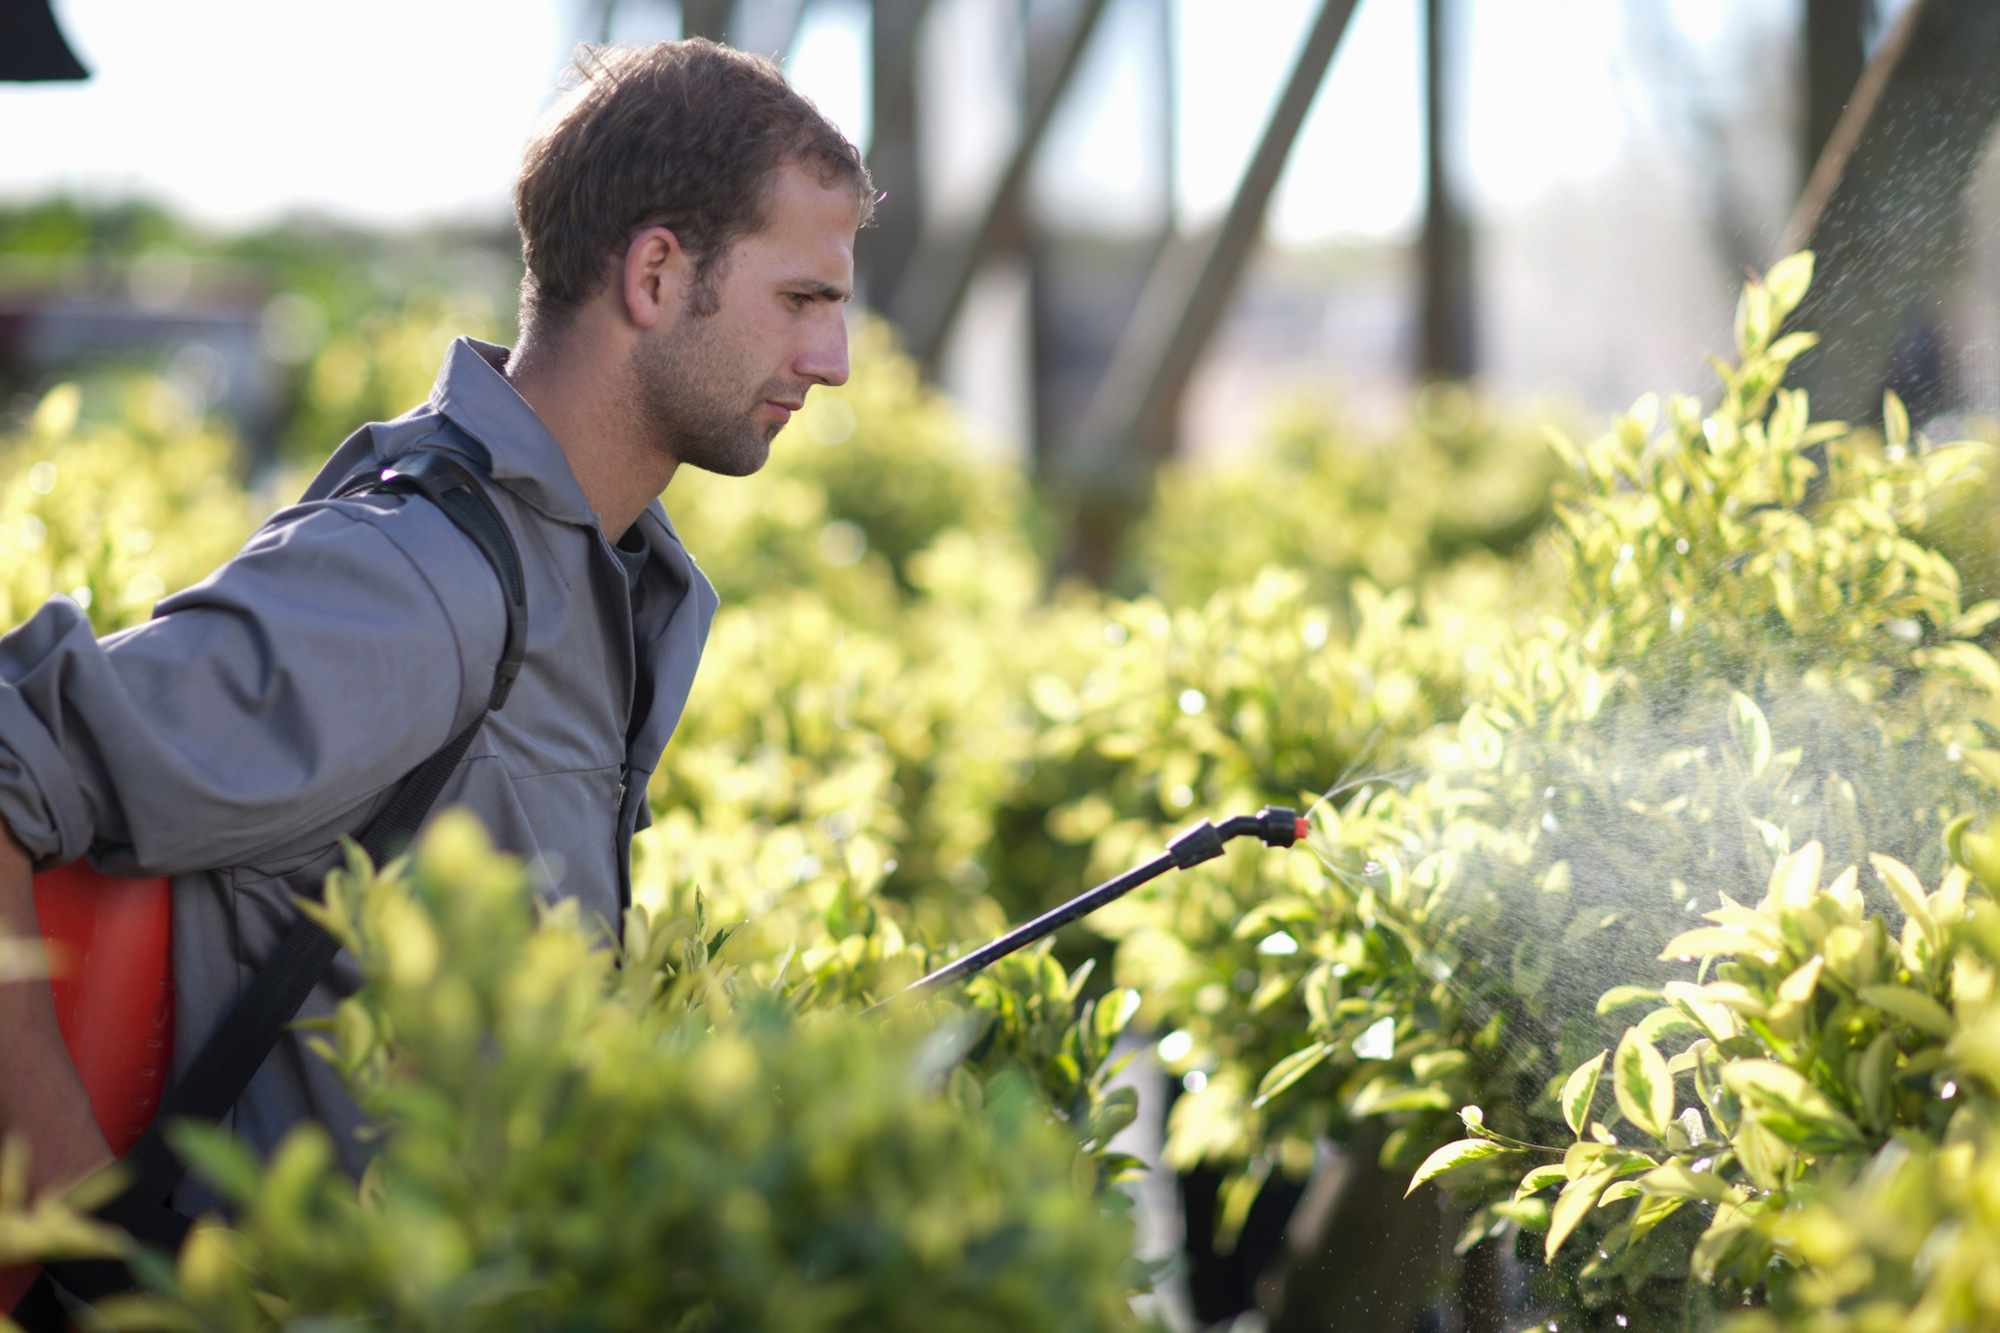 Young man spraying plants in a nursery.